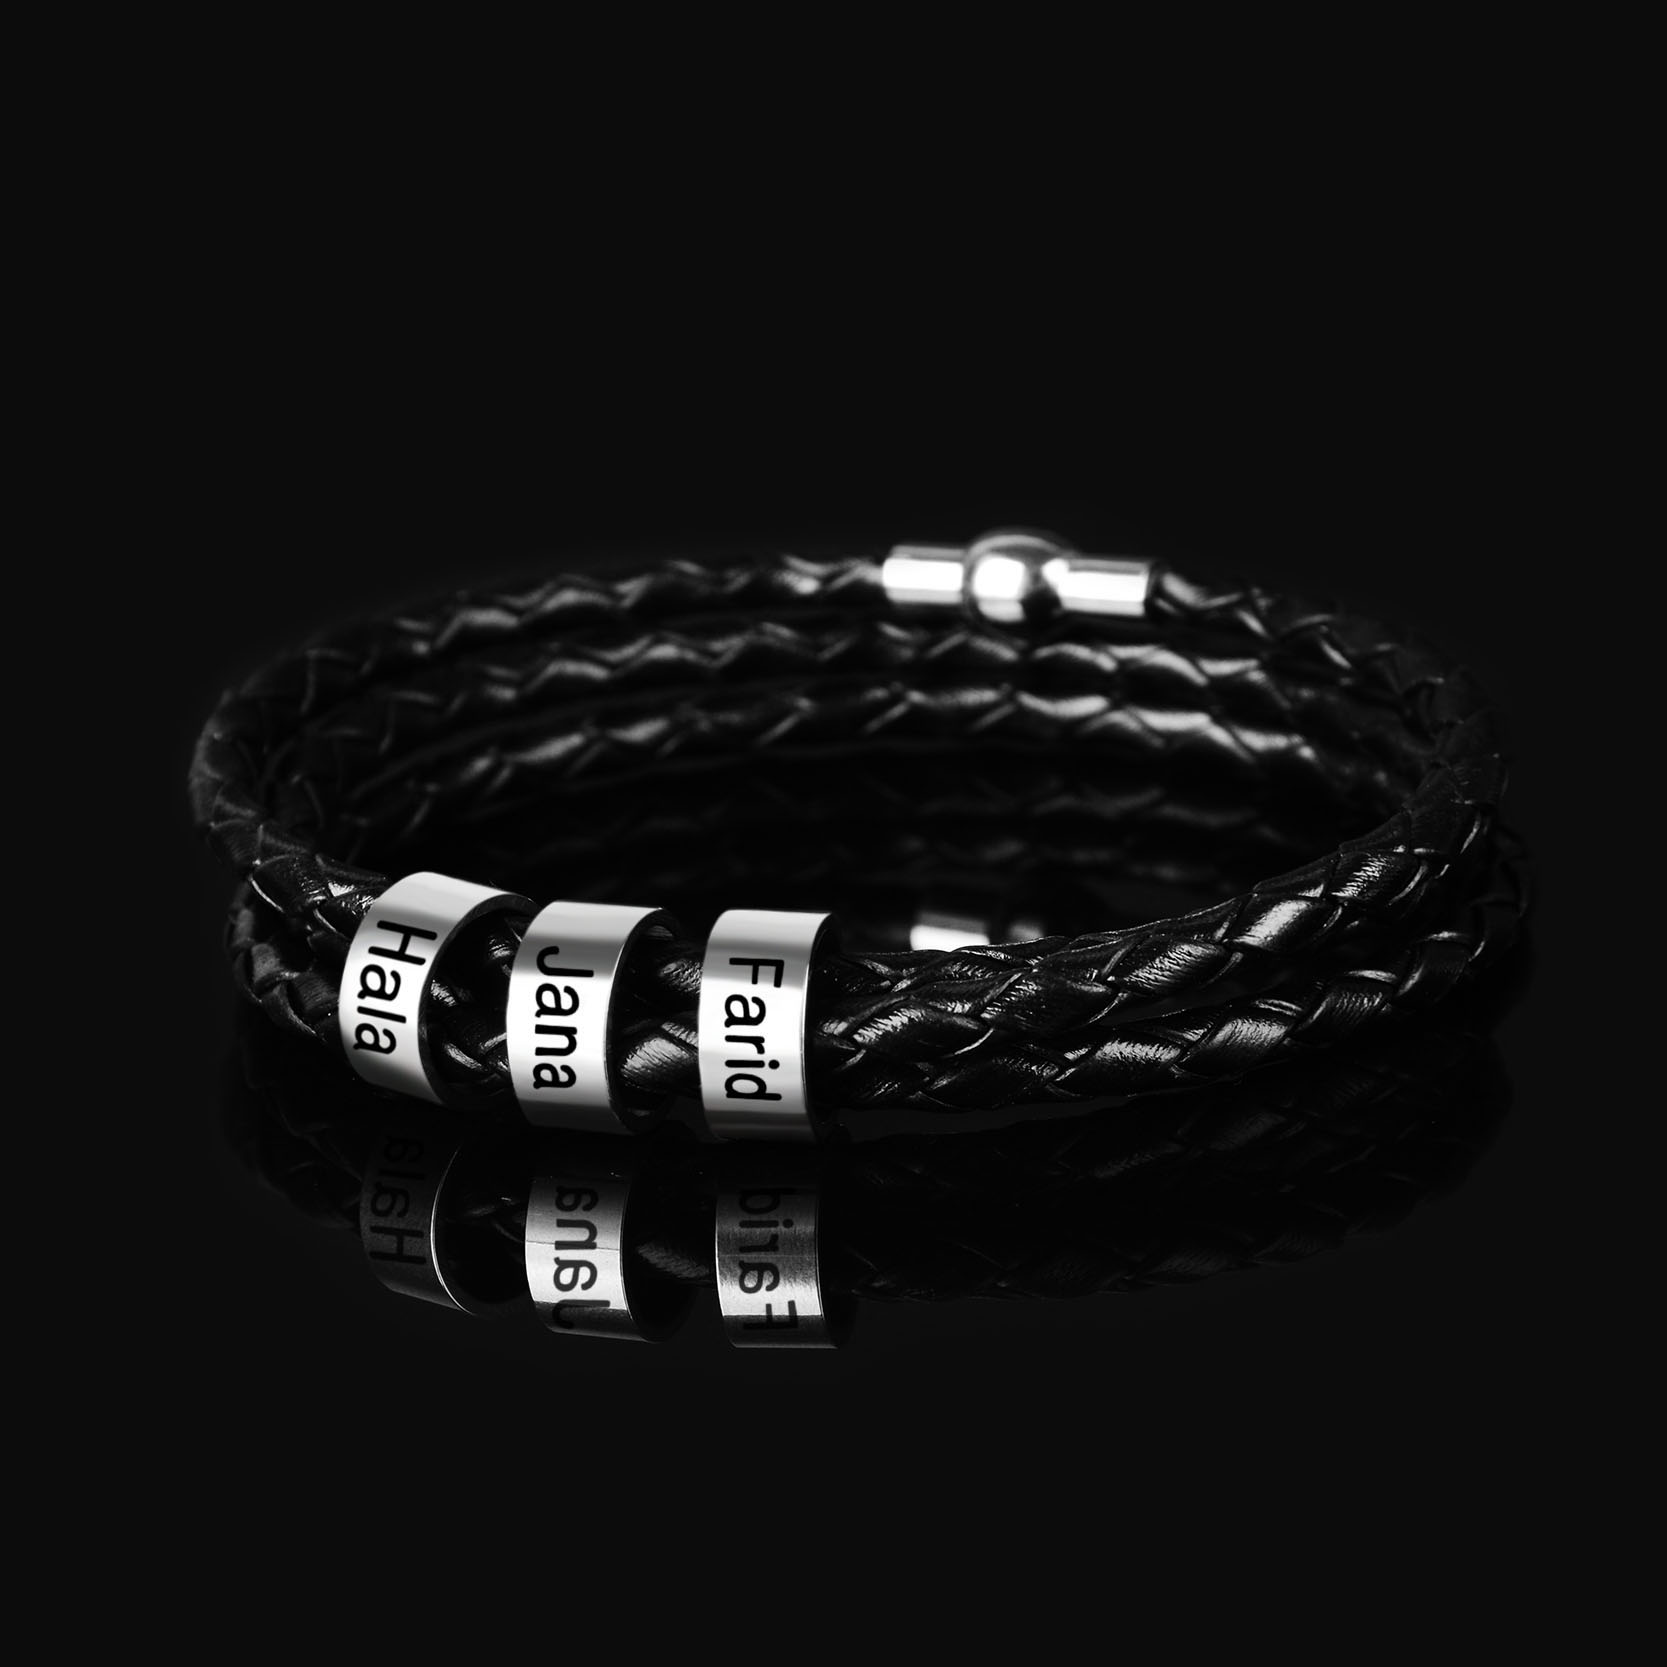 Personalized Stainless Steel Charm Bracelets Genuine Leather Braided Rope Men Bracelet Custom With 1-9 Names Beads Jewelry Gift